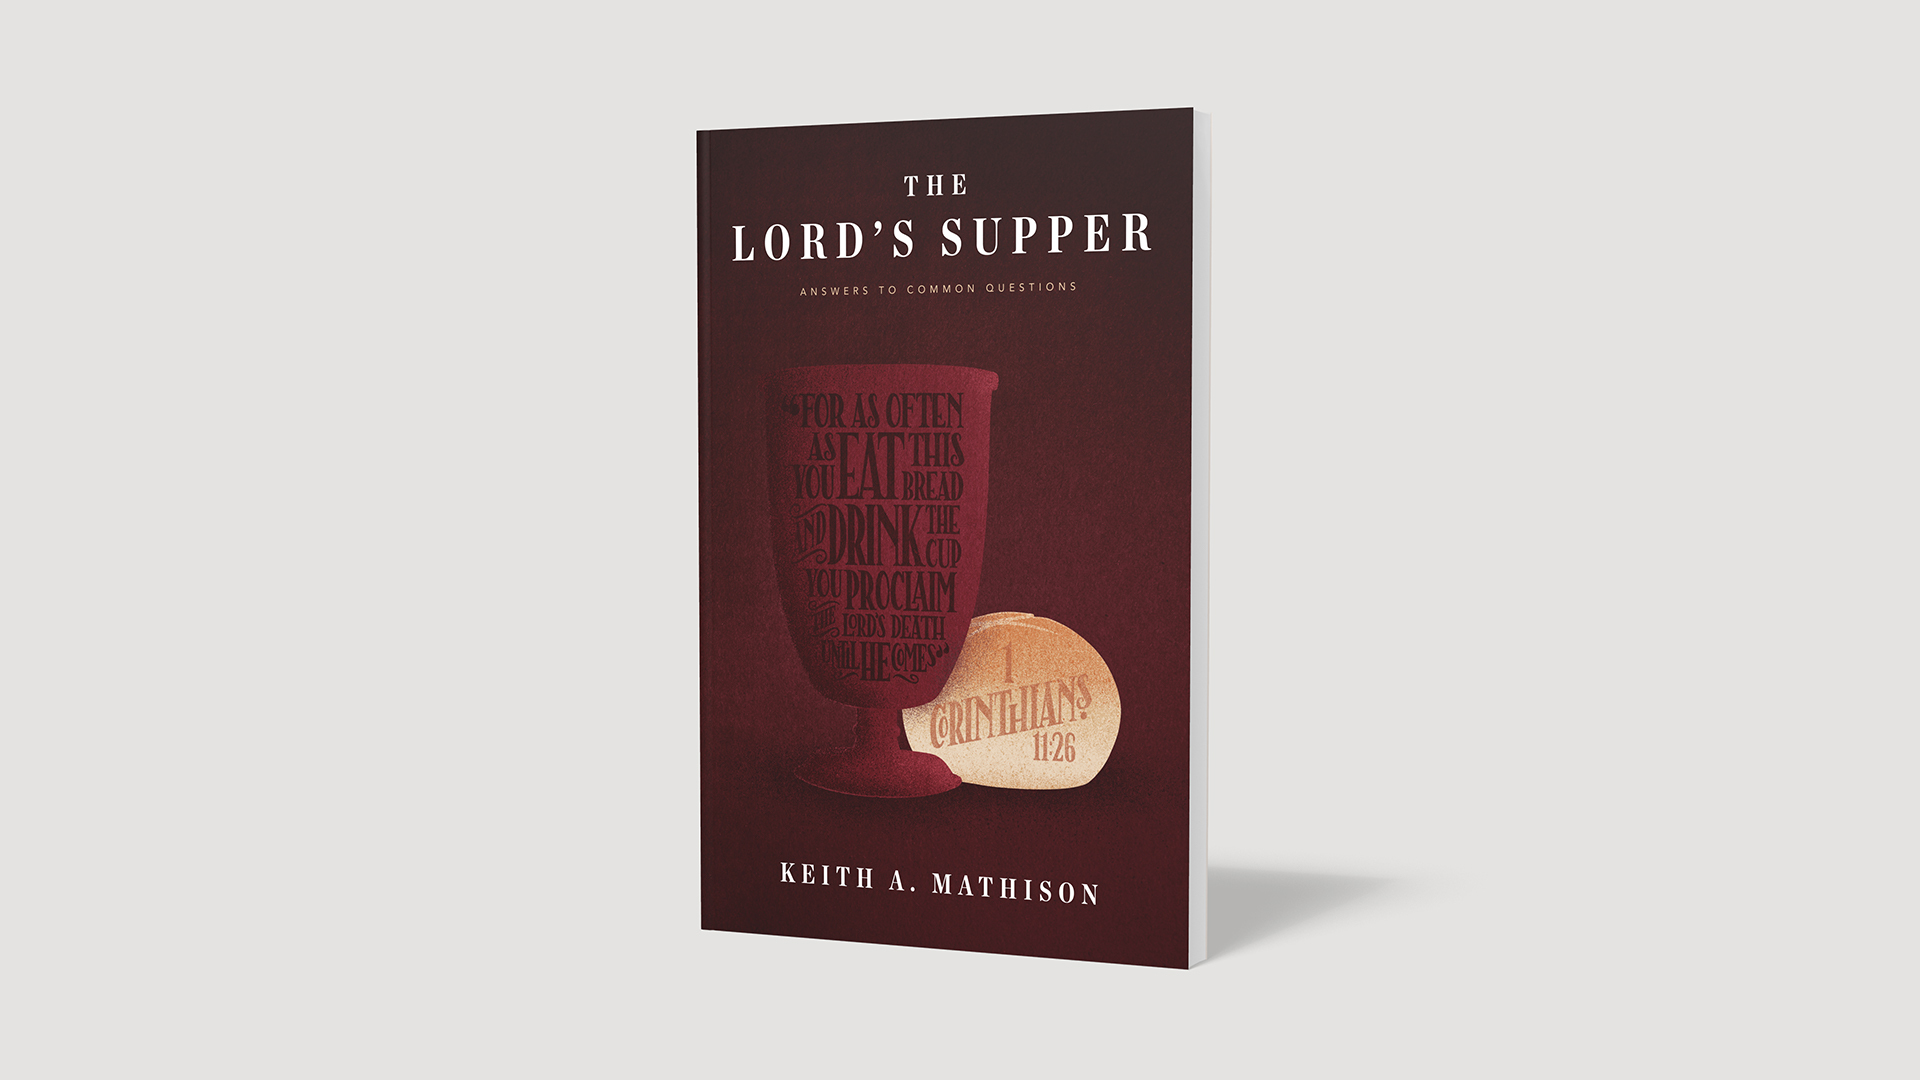 1920x1080_App_Push_Wide_LORDS_SUPPER_BOO